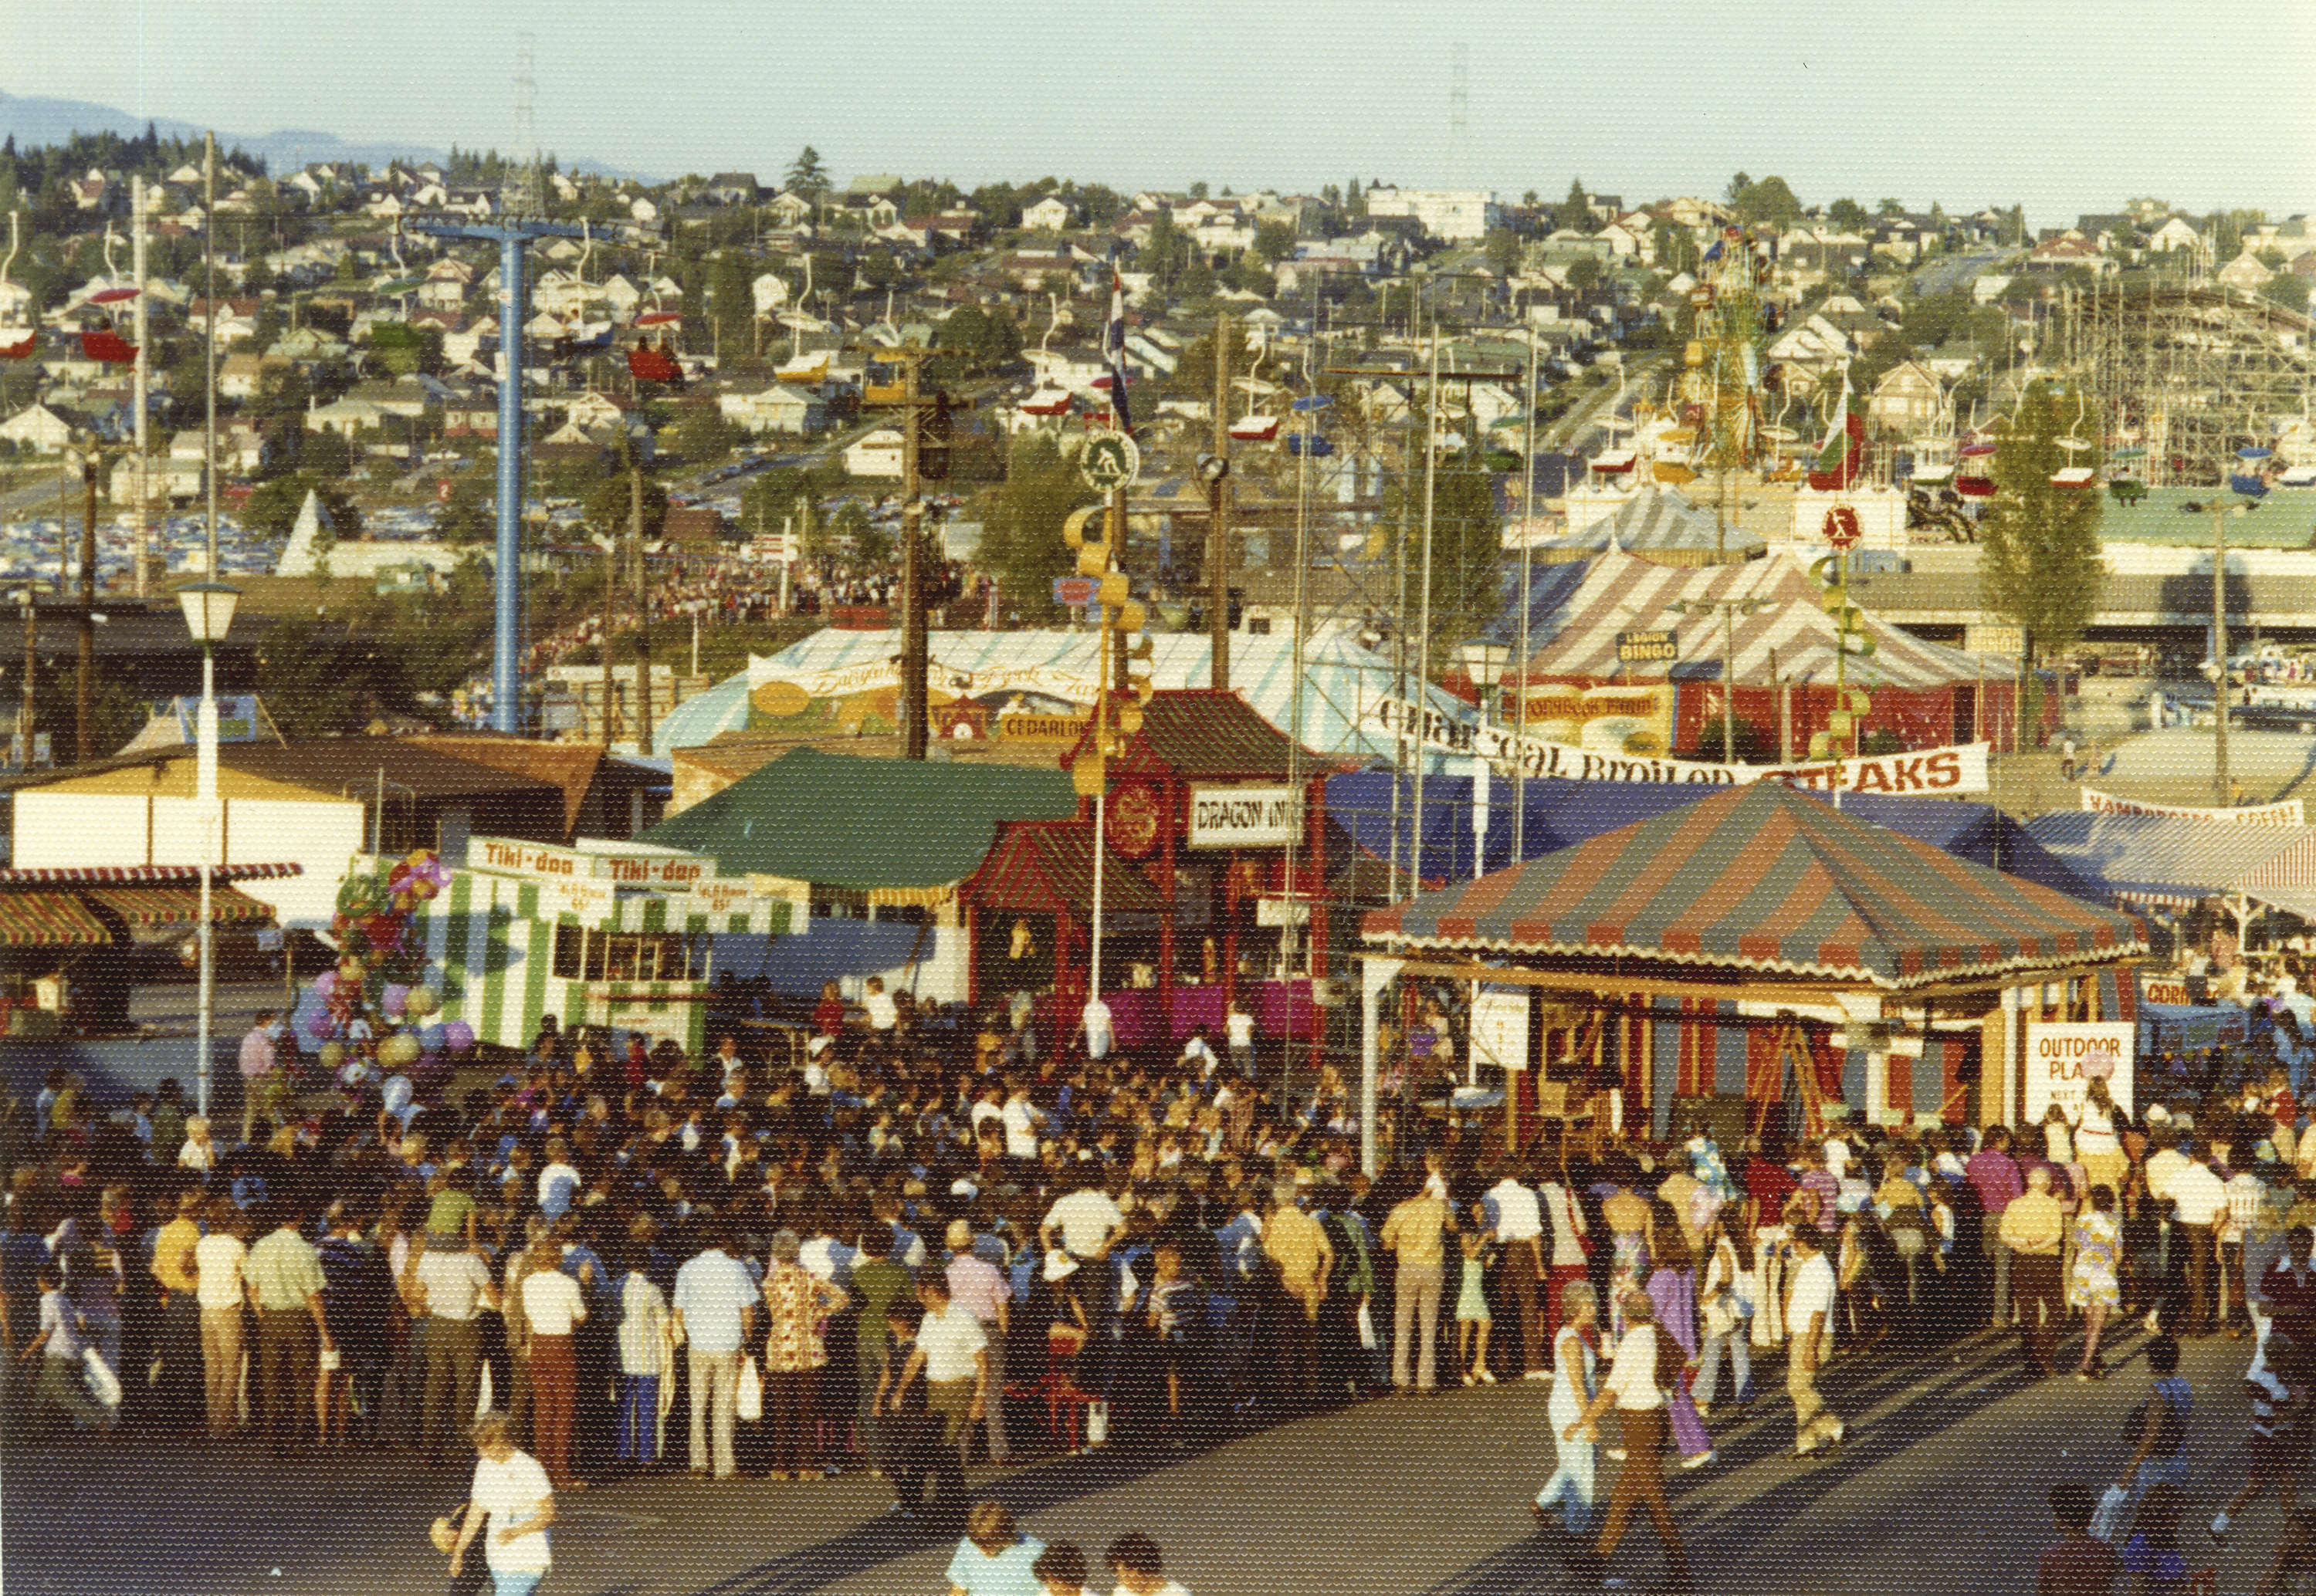 851px version of Pacific National Exhibition (PNE) fairgrounds in the 1970s